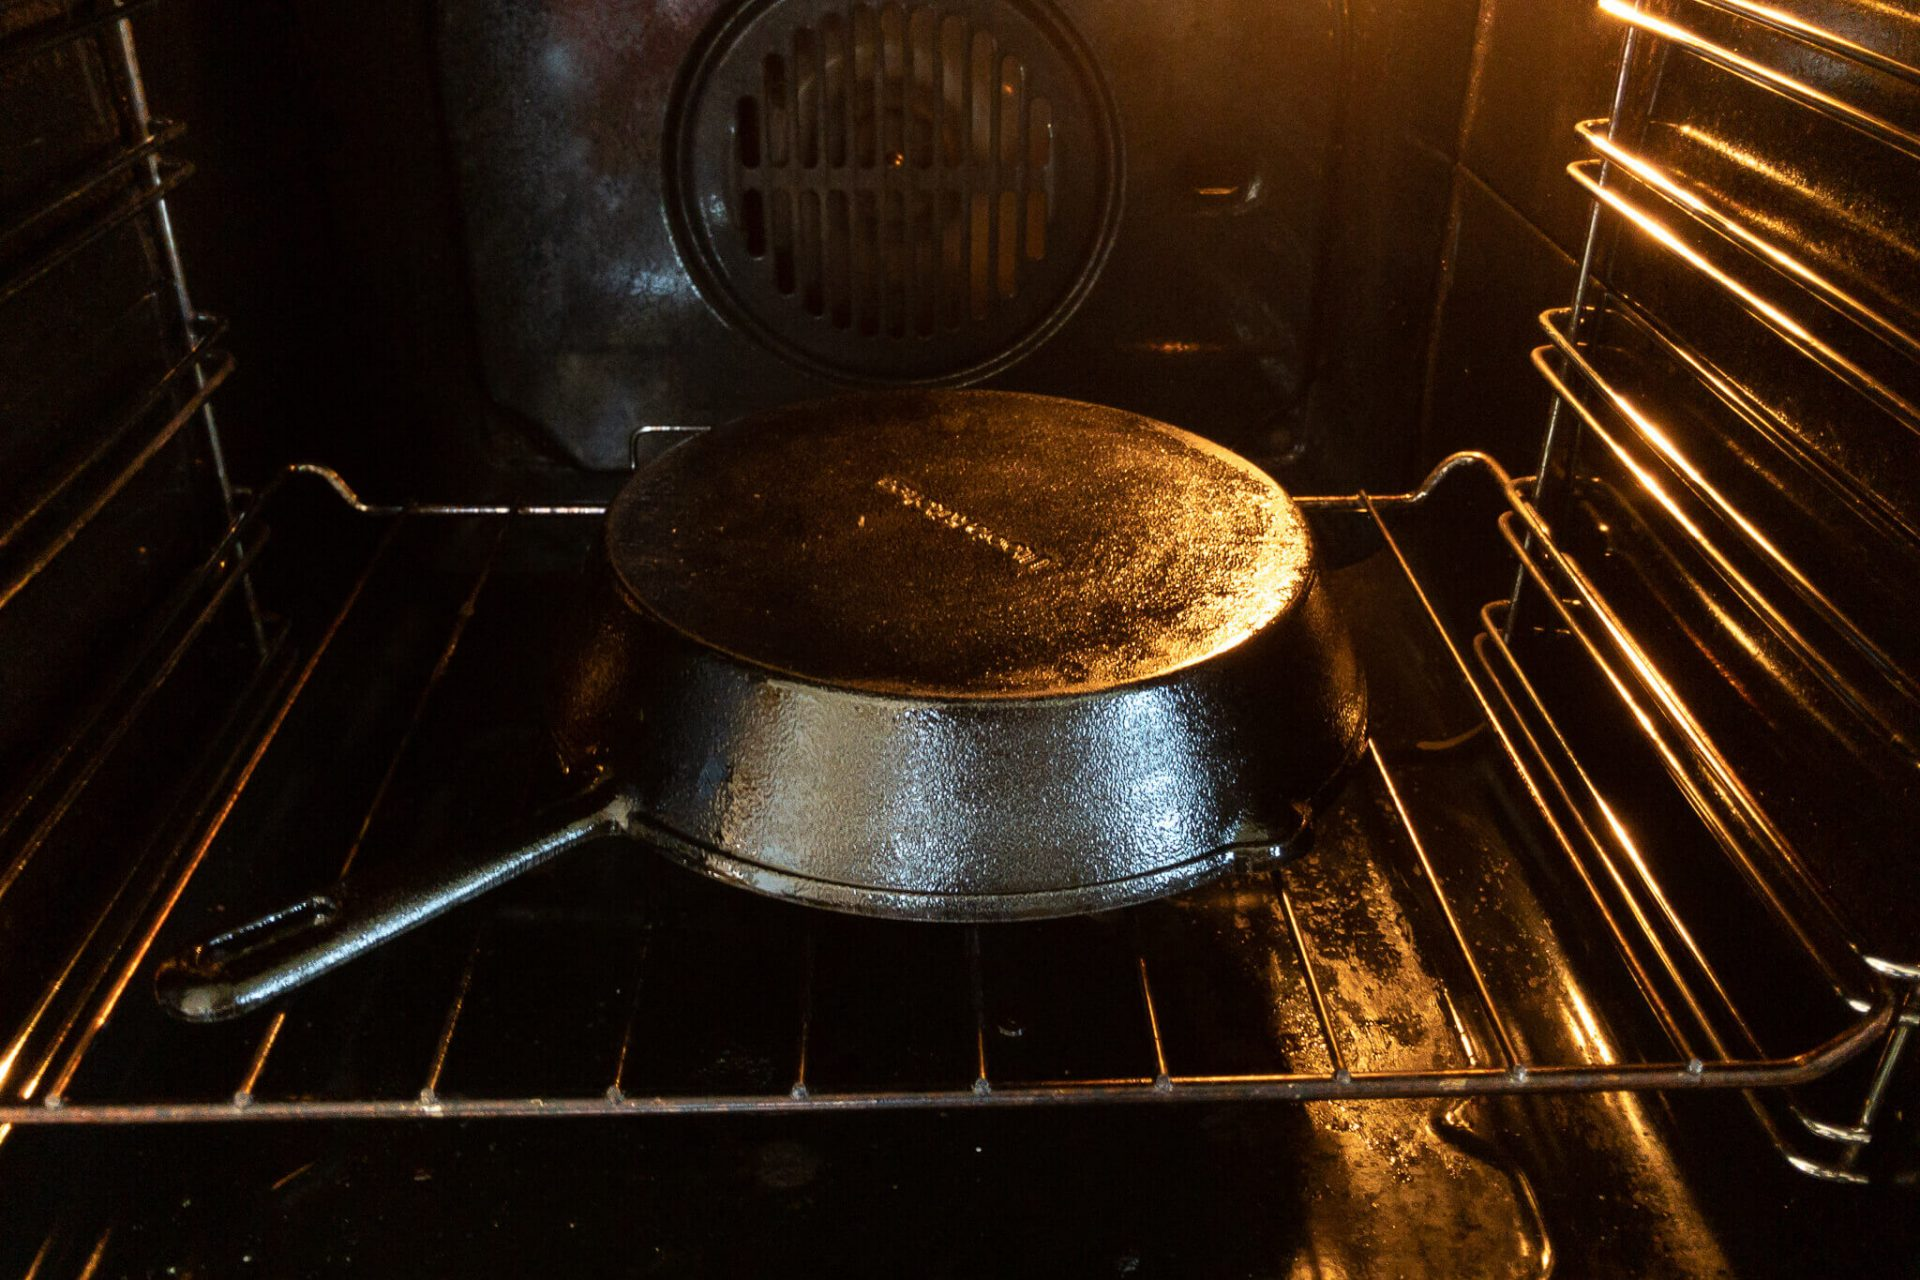 A freshly seasoned cast iron skillet ready to bake in a hot oven.